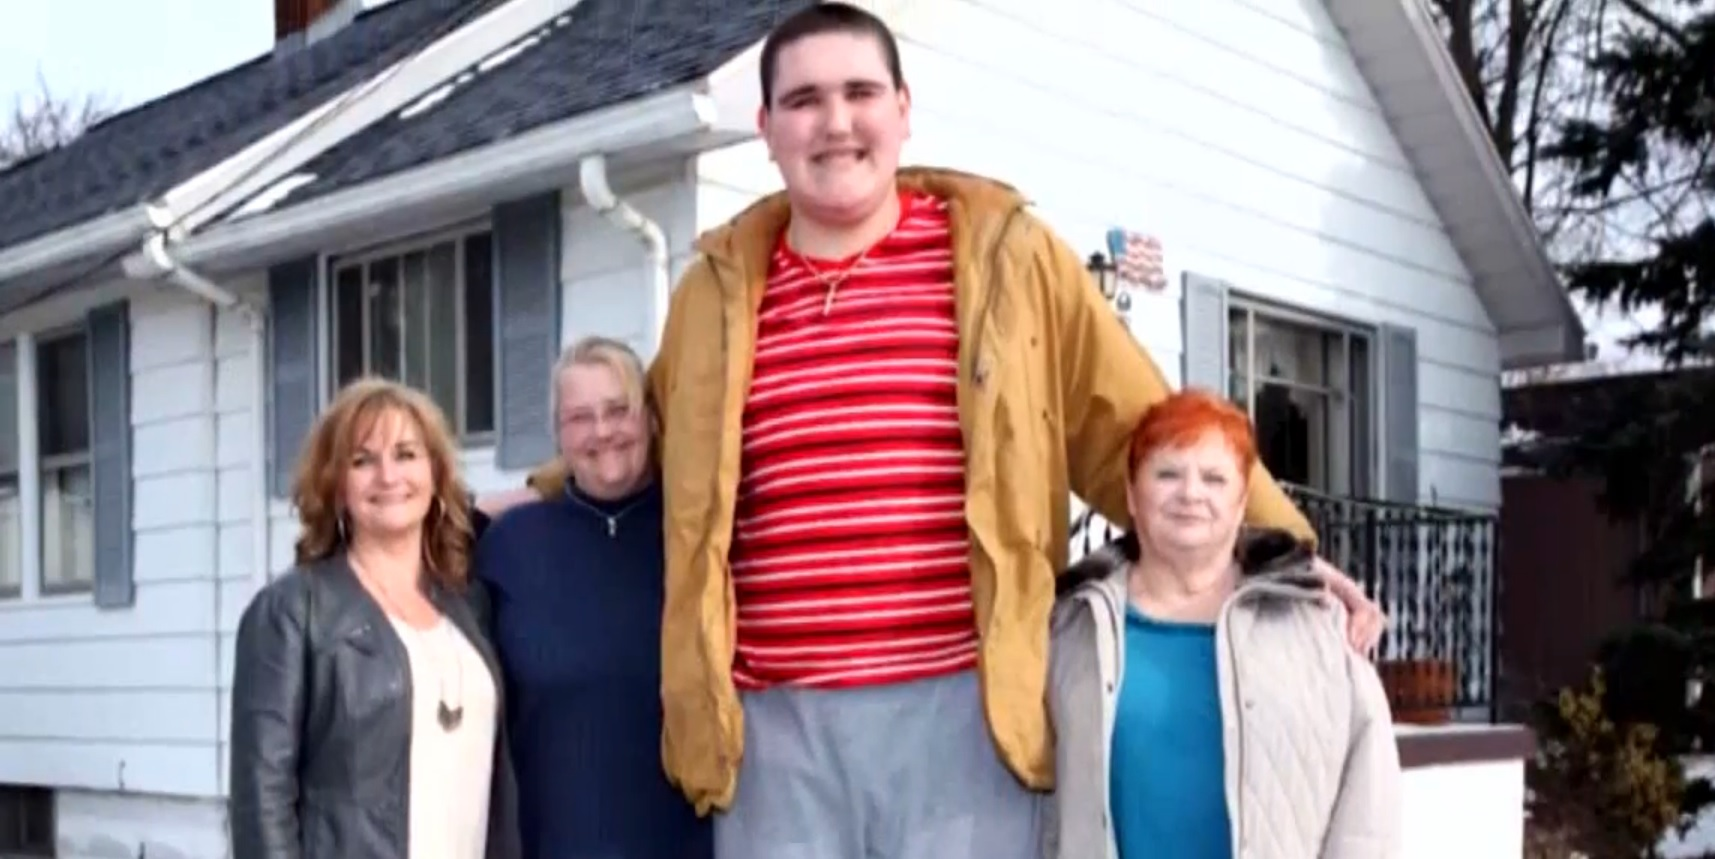 World's next tallest man alive could be this teenager in Michigan